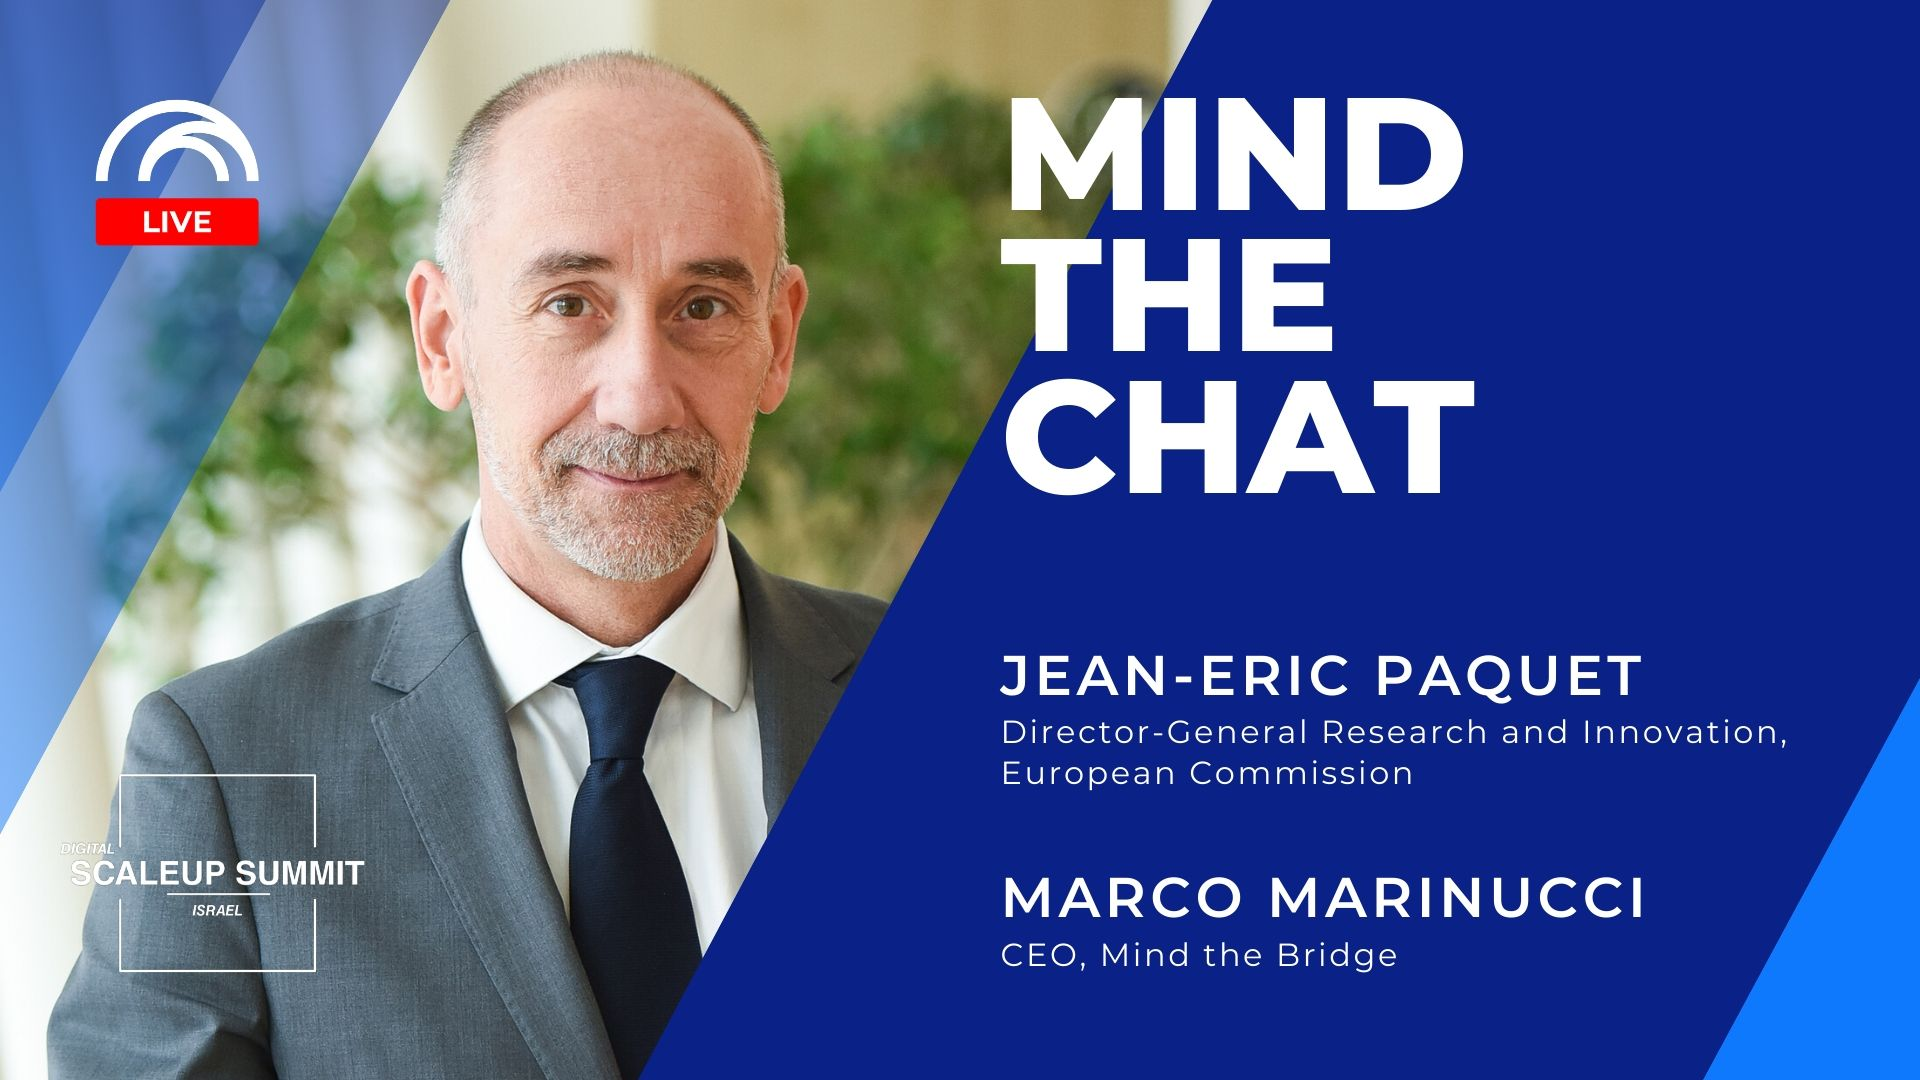 Mind the Chat with Jean-Eric Paquet